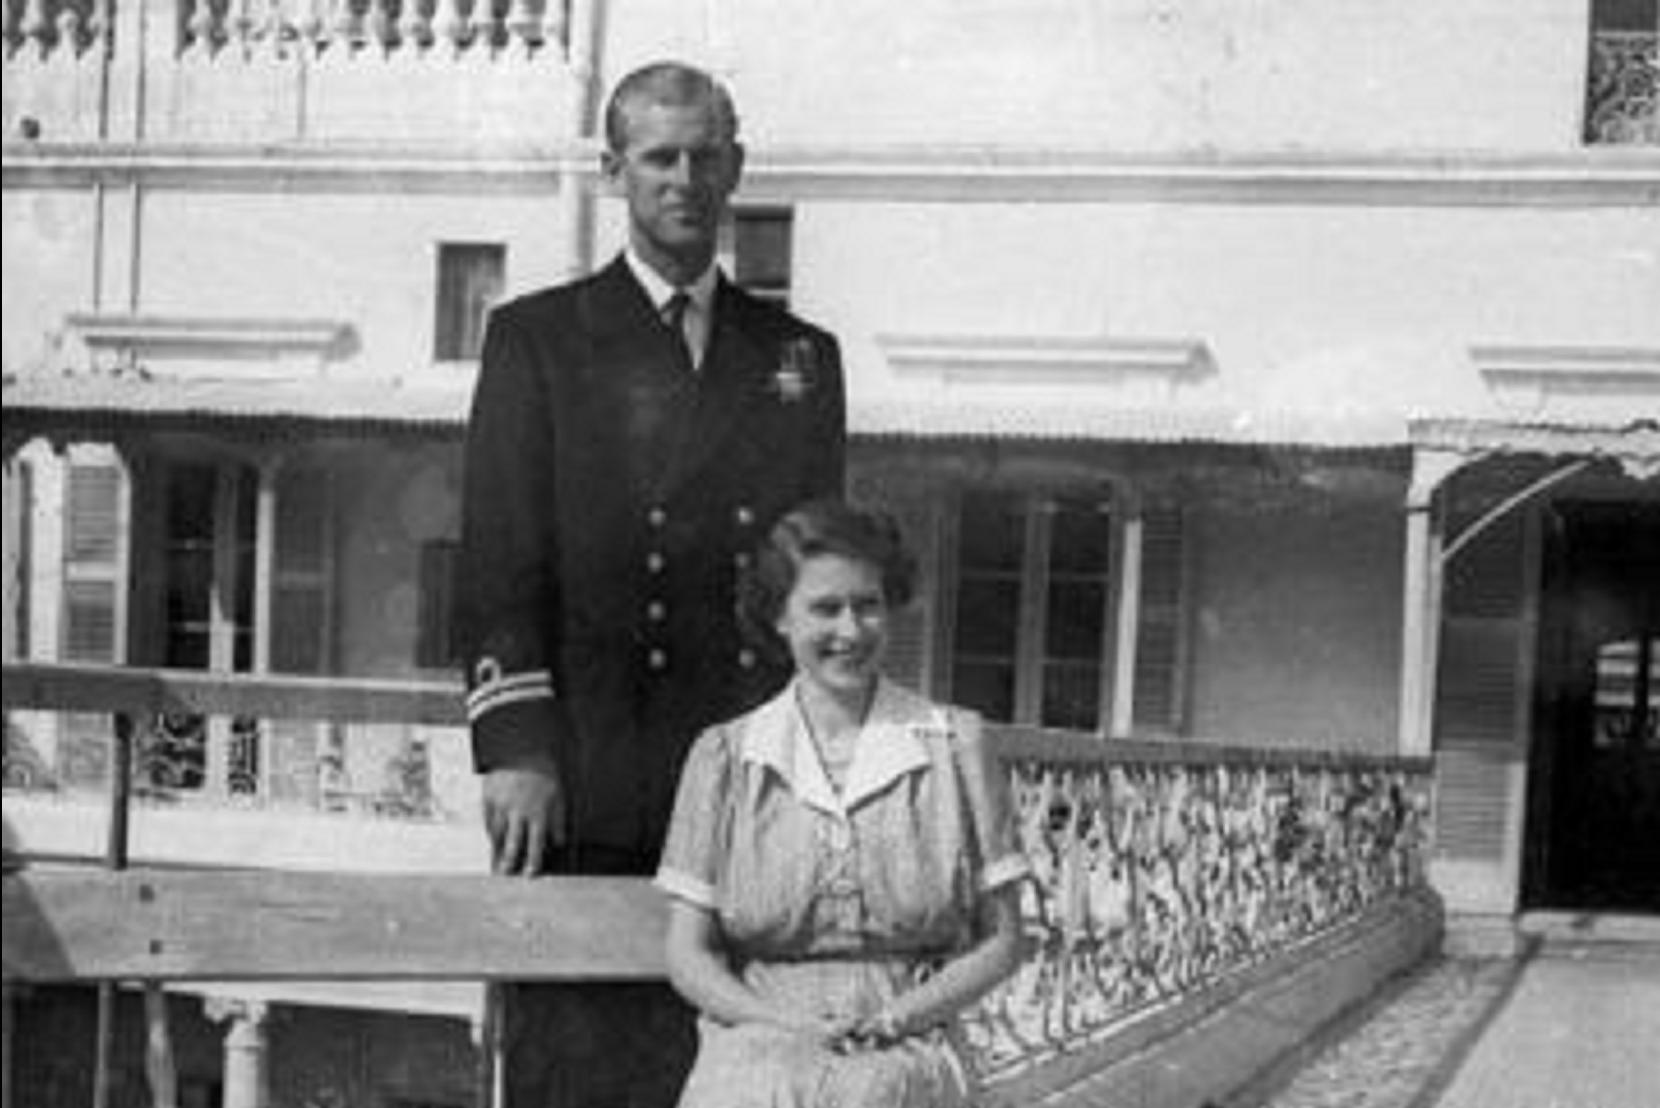 The royal couple photographed at Villa Guardamangia by Frank Attard. British media had wondered at the time whether Prince Philip was indicating a second baby on the way.